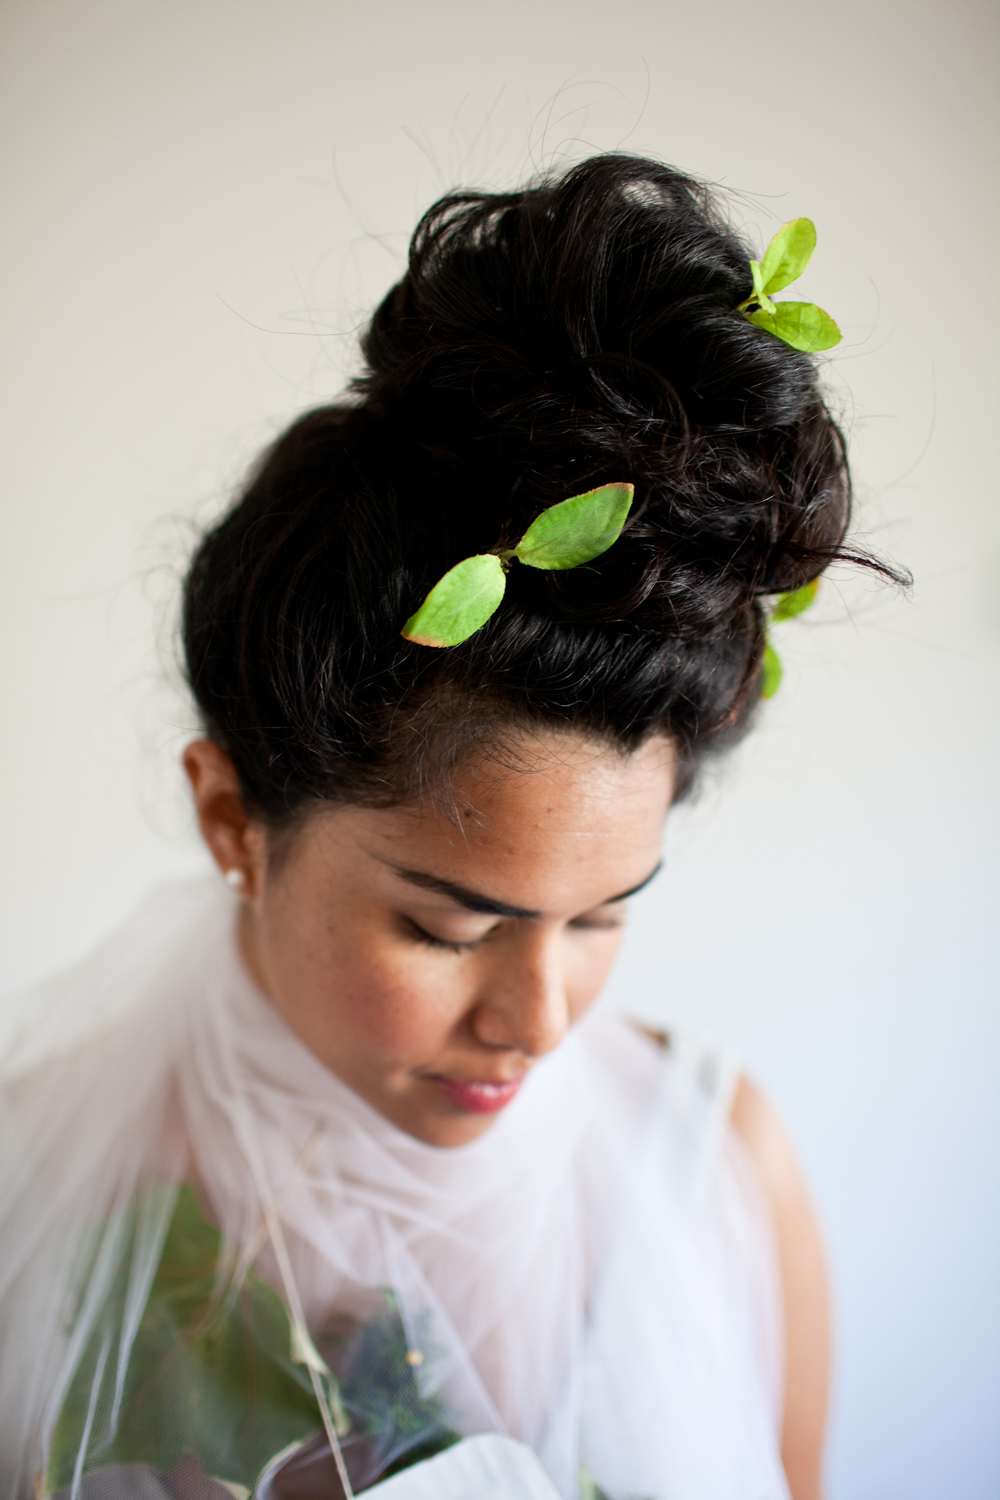 I placed cute little leaves in my hair! A green bow would look great as well!!!